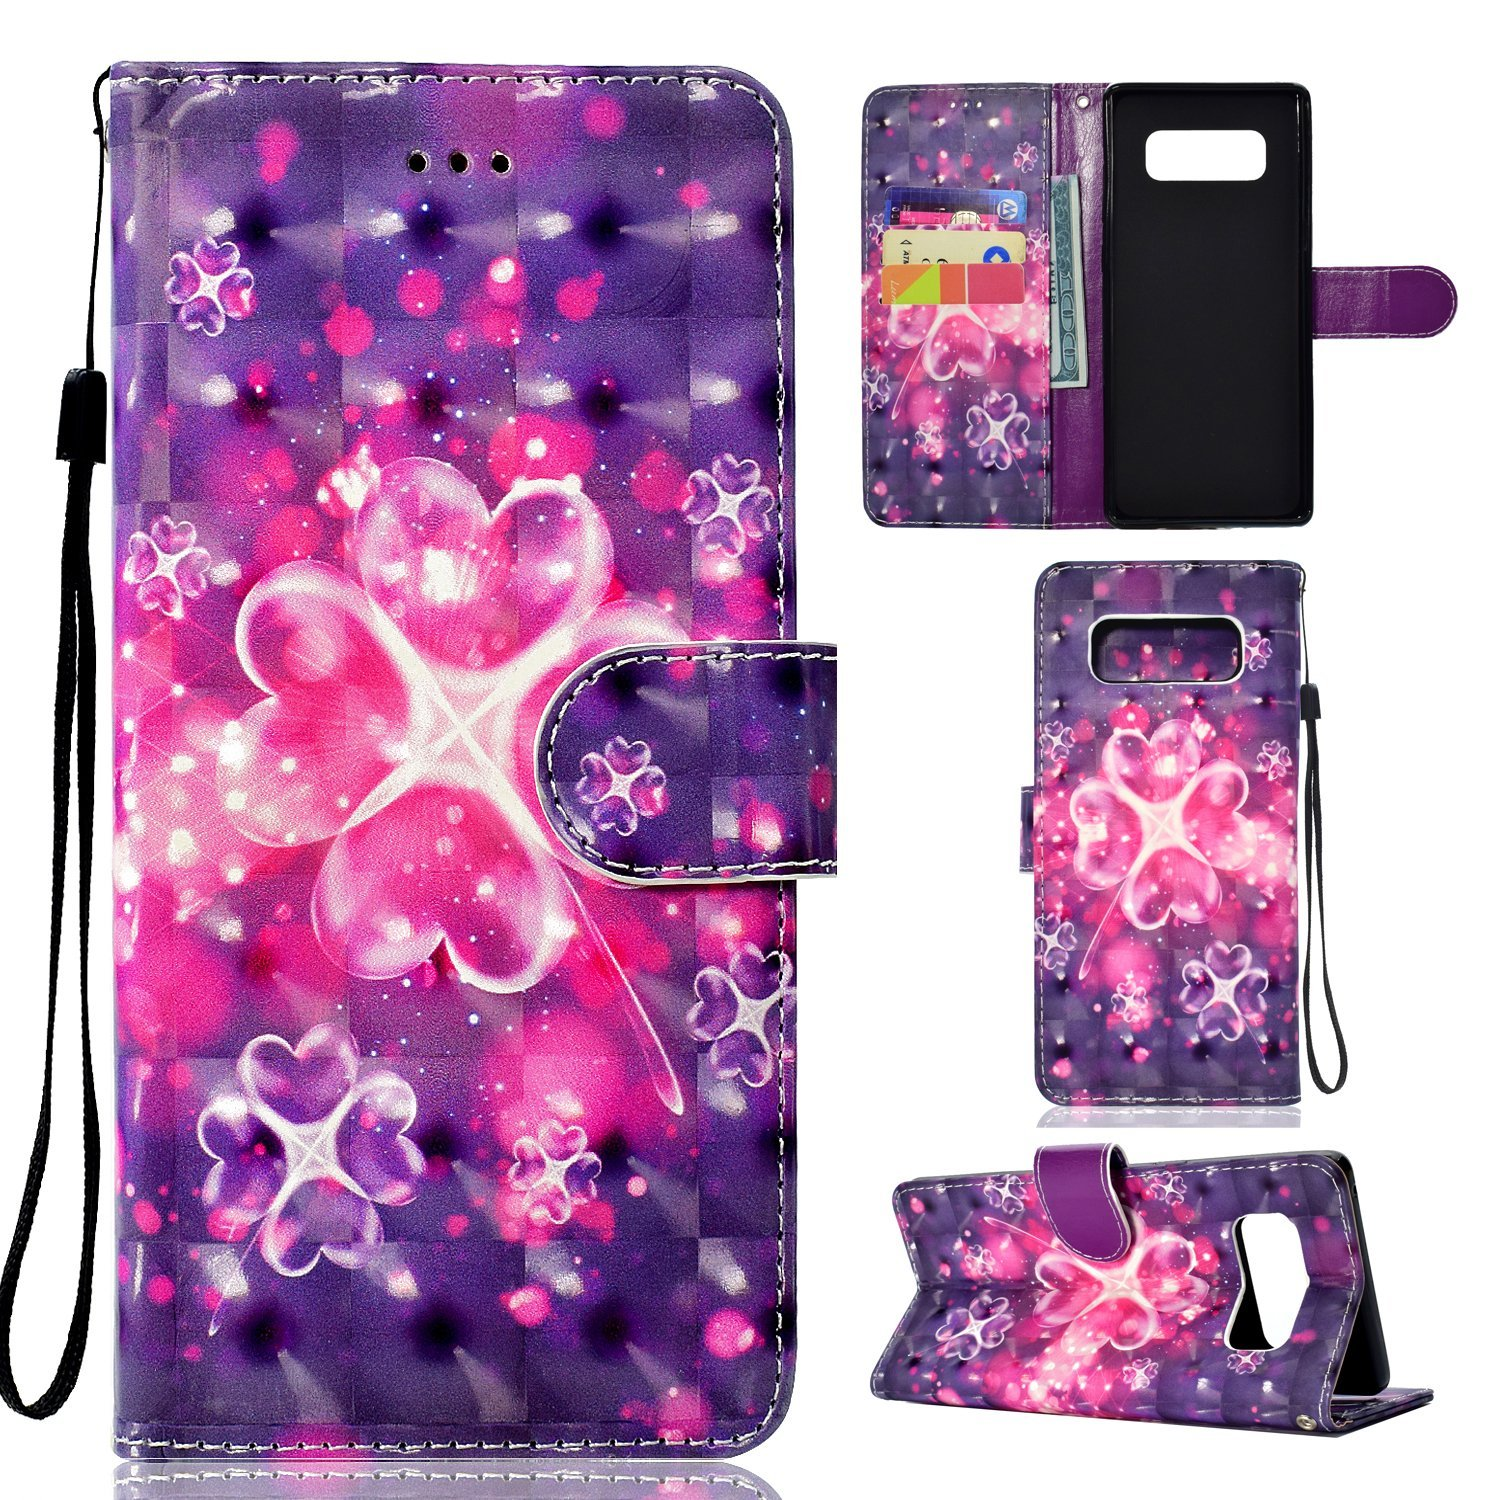 Galaxy Note 8 Case, Ranyi [Full 3D Painting Print] [Flip Magnetic Wallet] [Glitter & Shiny] [ID&Card Holder] Luxury Bling Leather Wallet Protective Case for Samsung Galaxy Note 8 (2017), magic flower